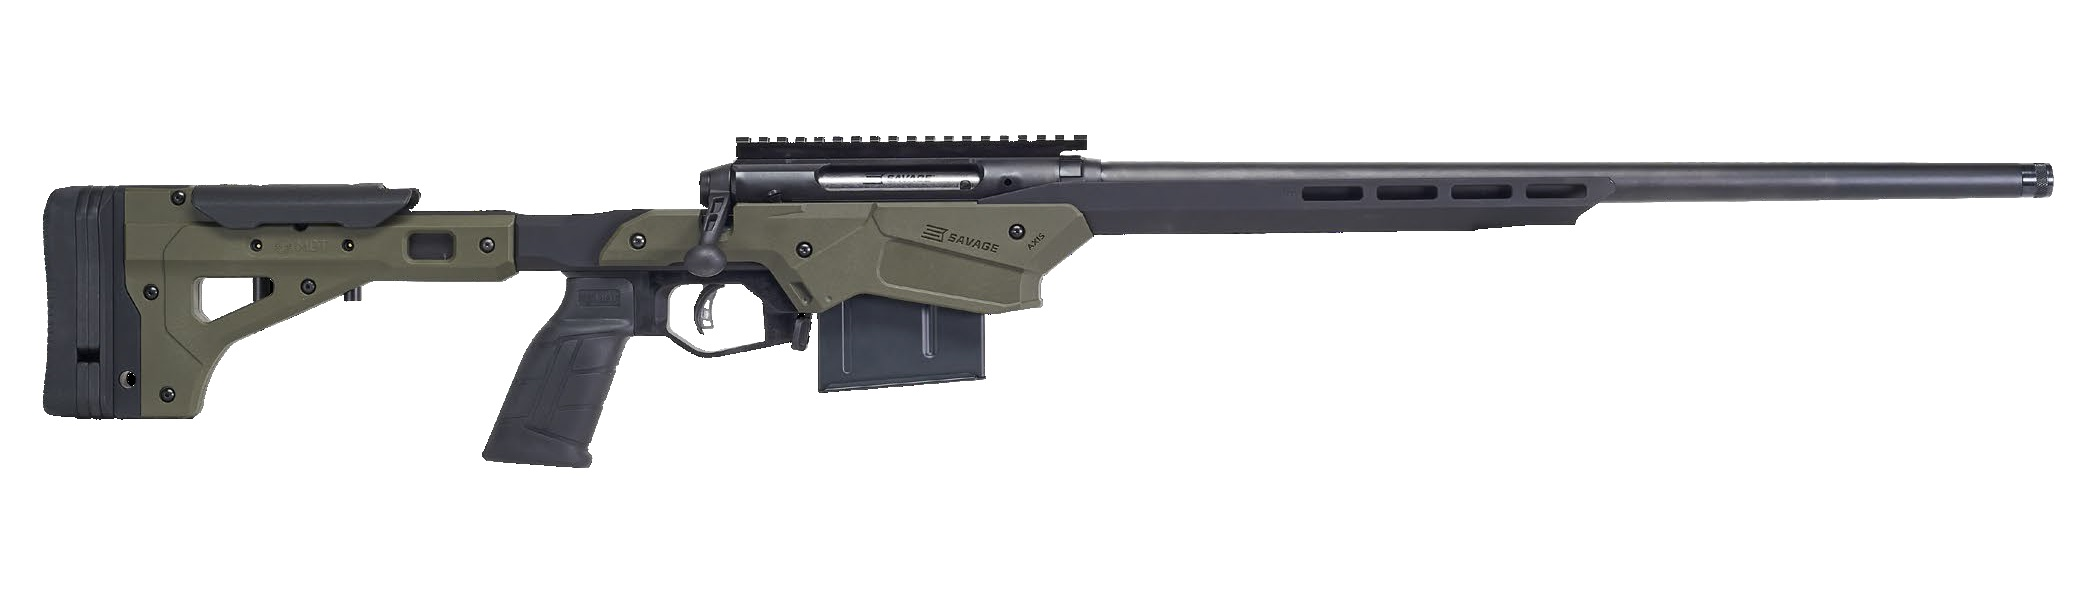 Savage Arms Axis II Precision 223 Rem